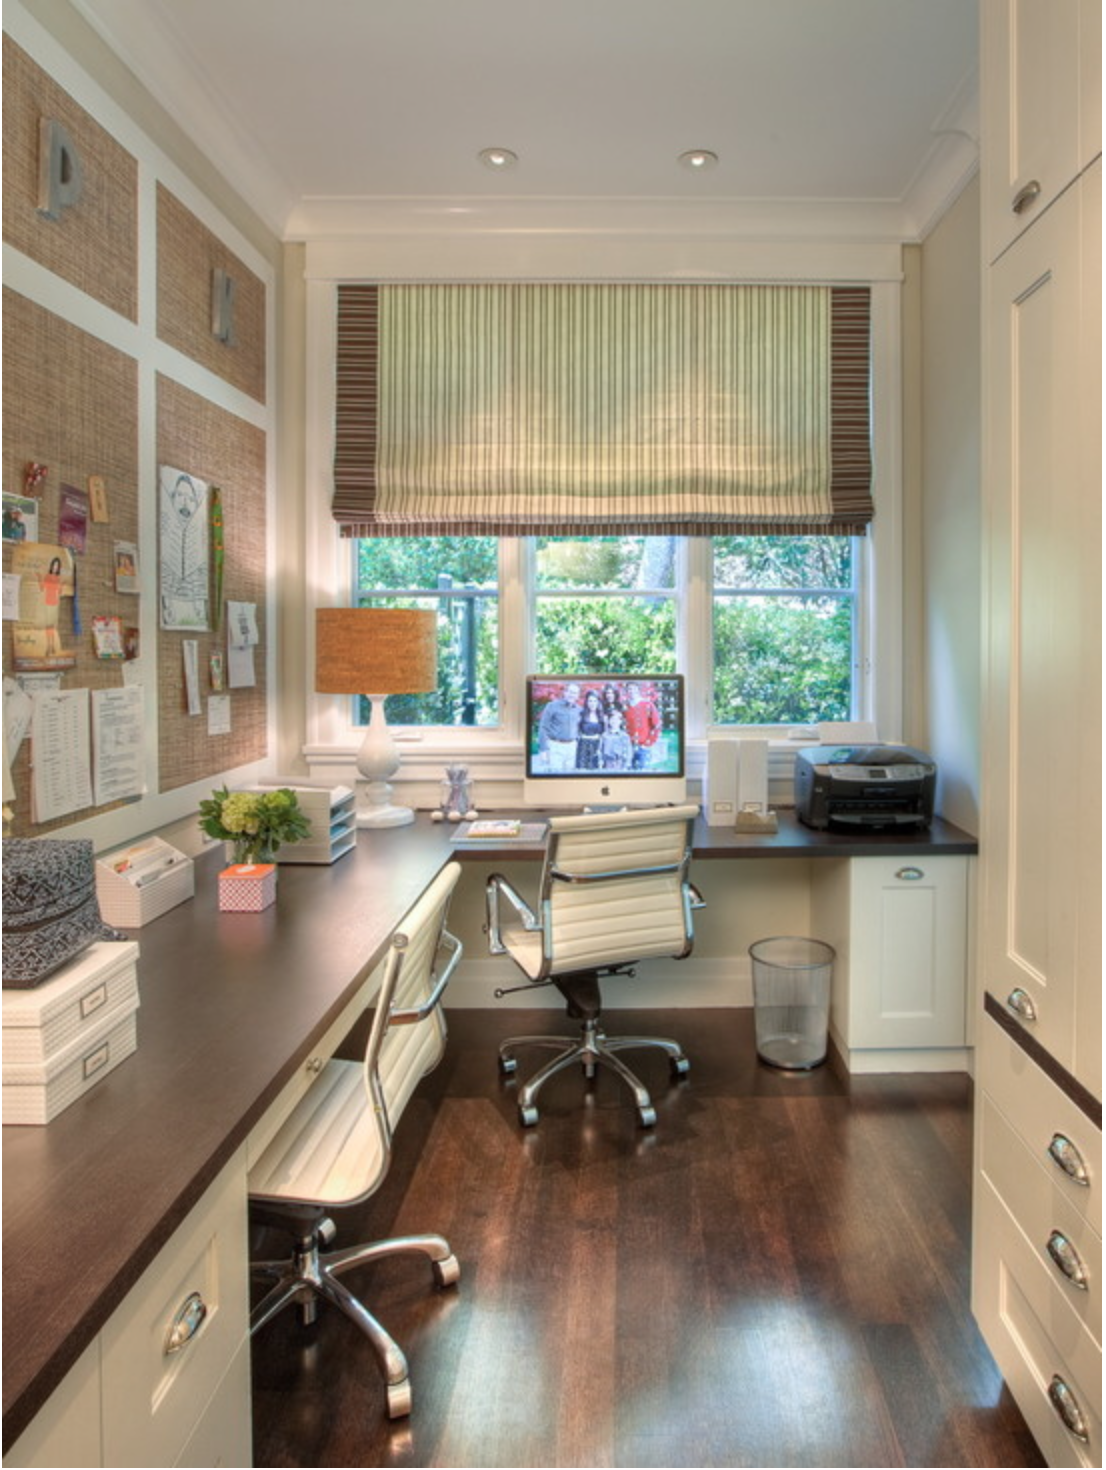 Stylish home office design ideas transitional home office de.